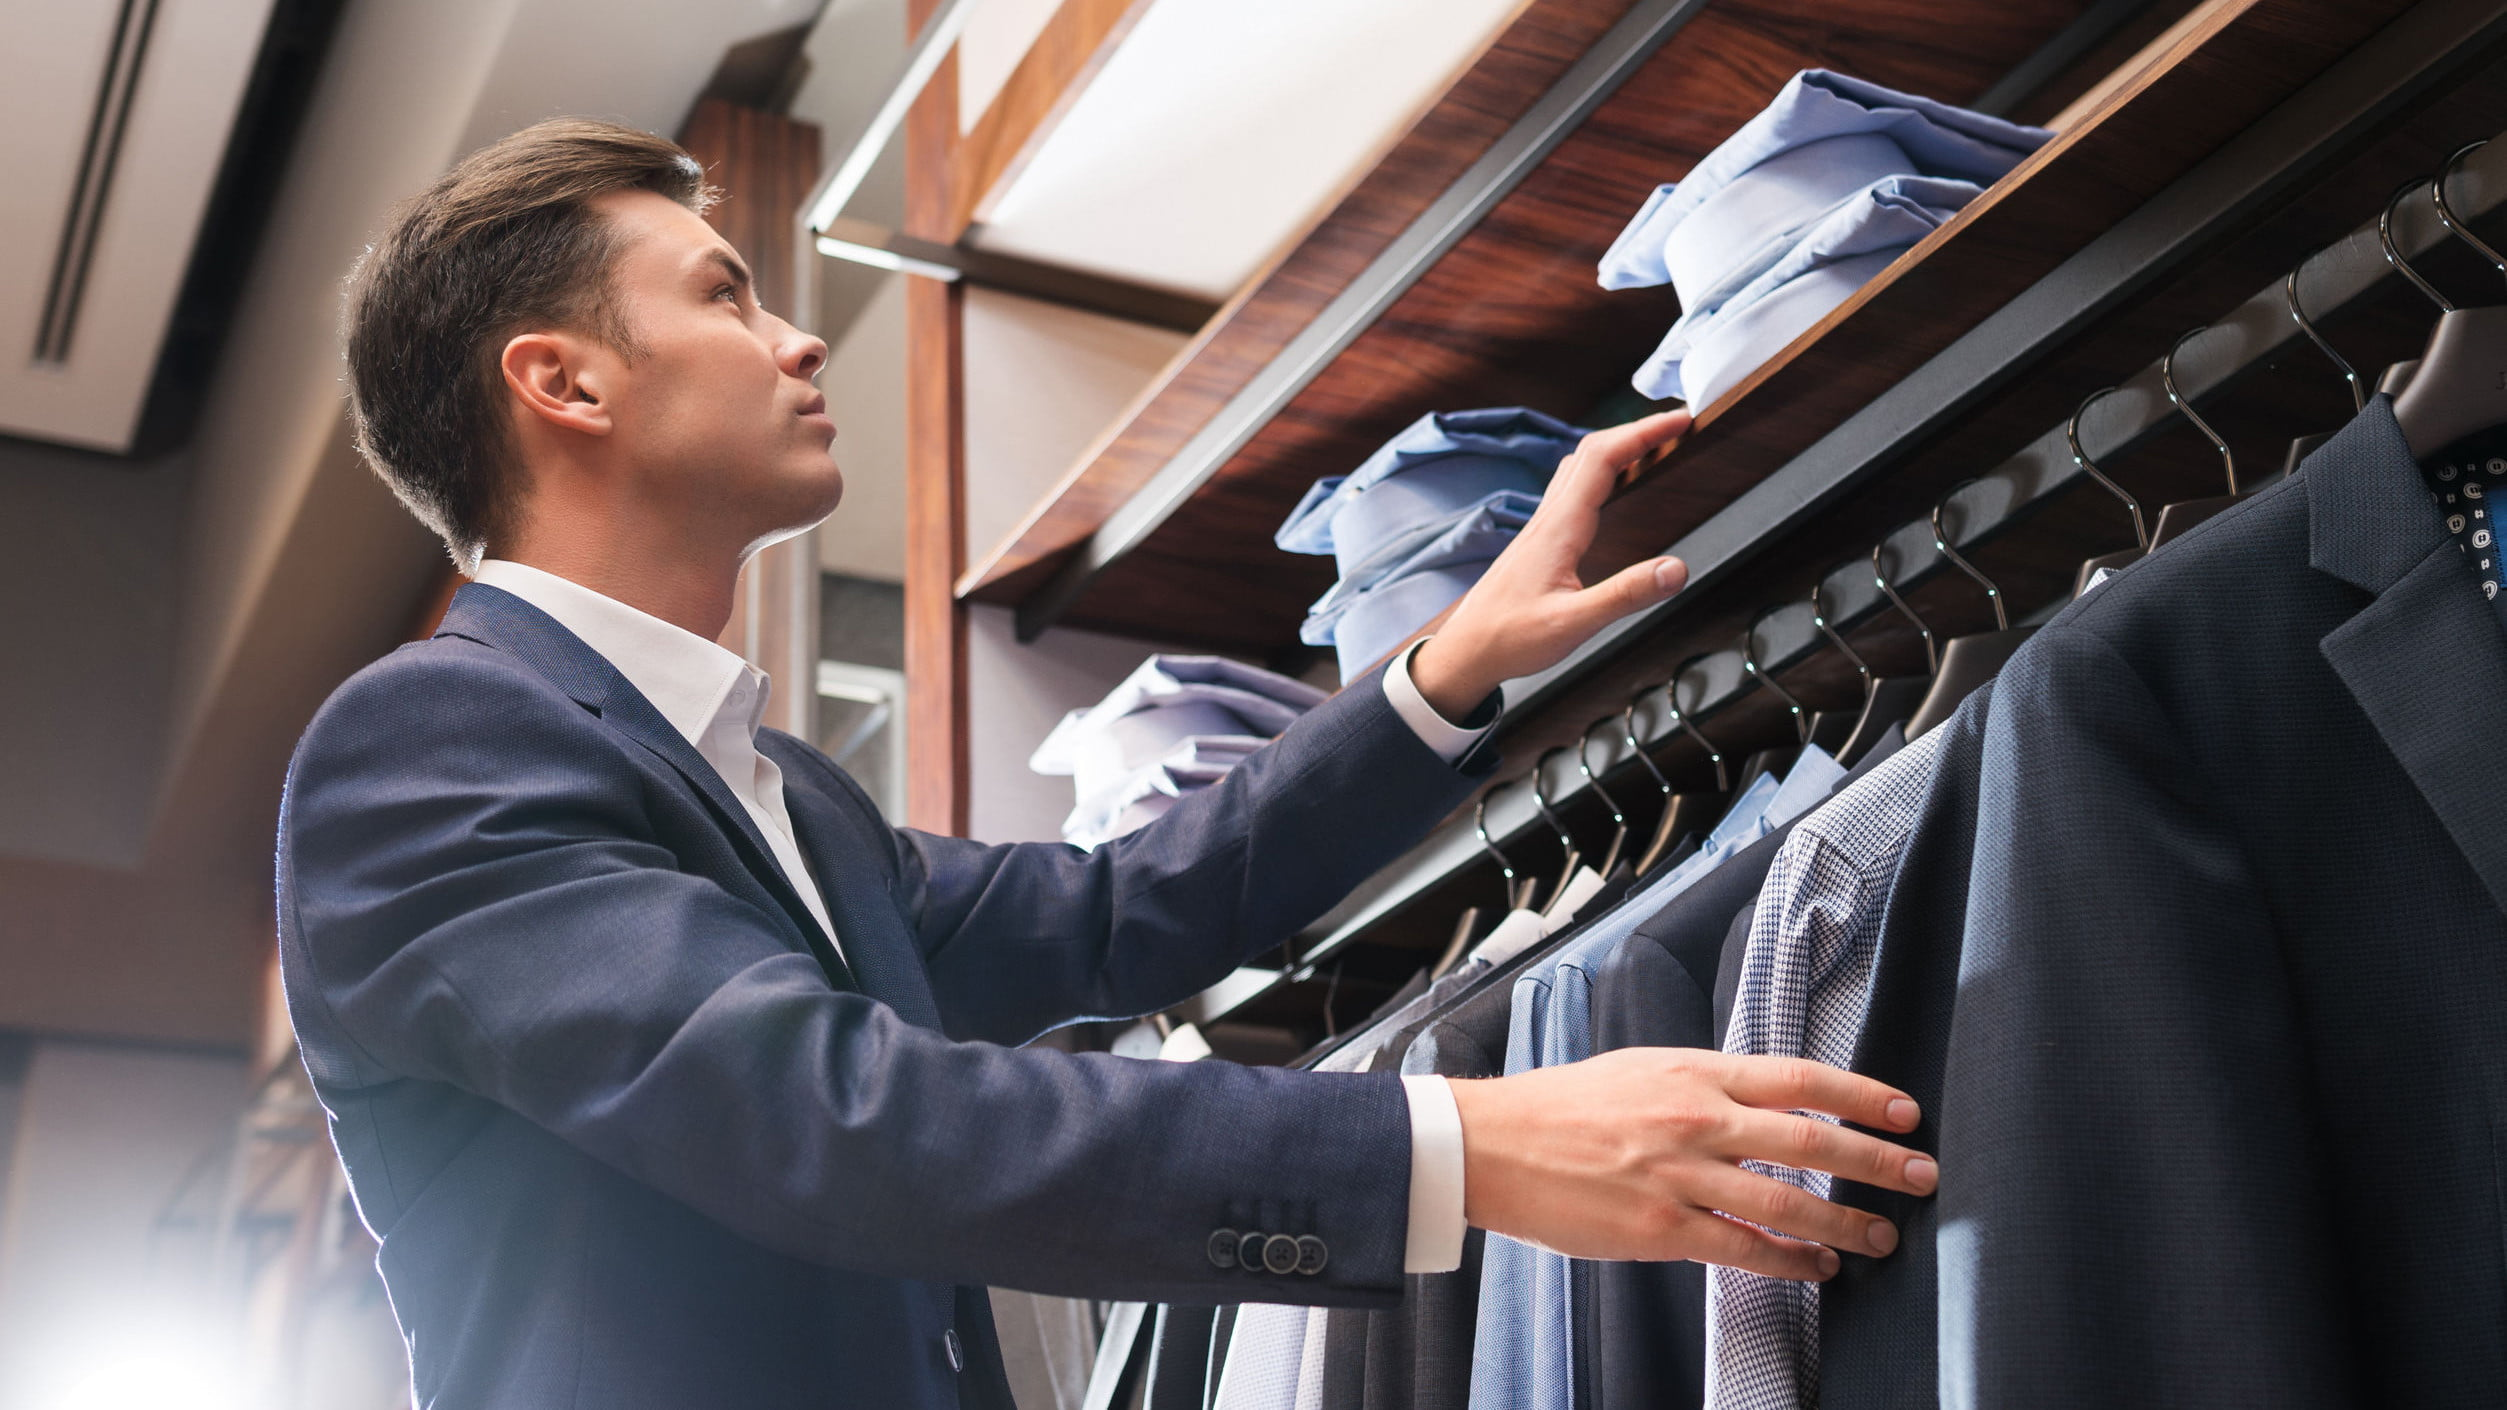 stock-man-buying-suit-in-store-2507x1410